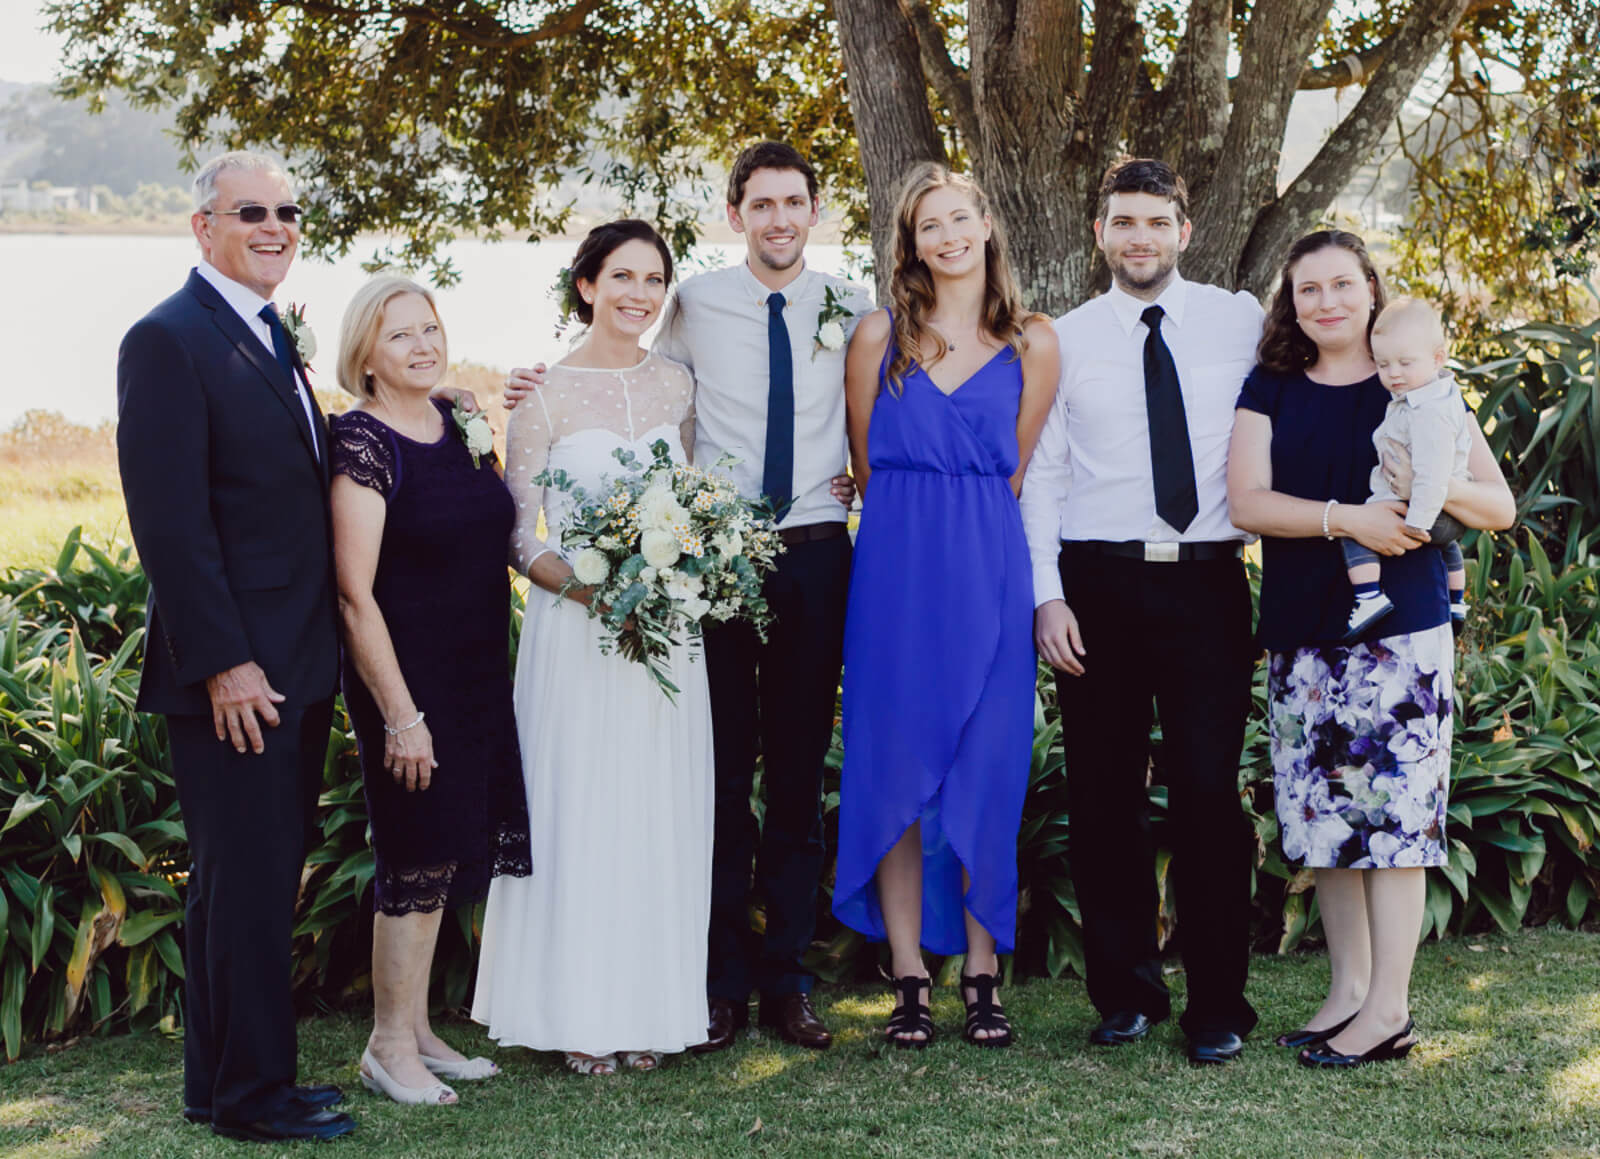 Philip Coetzee (far left) and family in New Zealand 2017